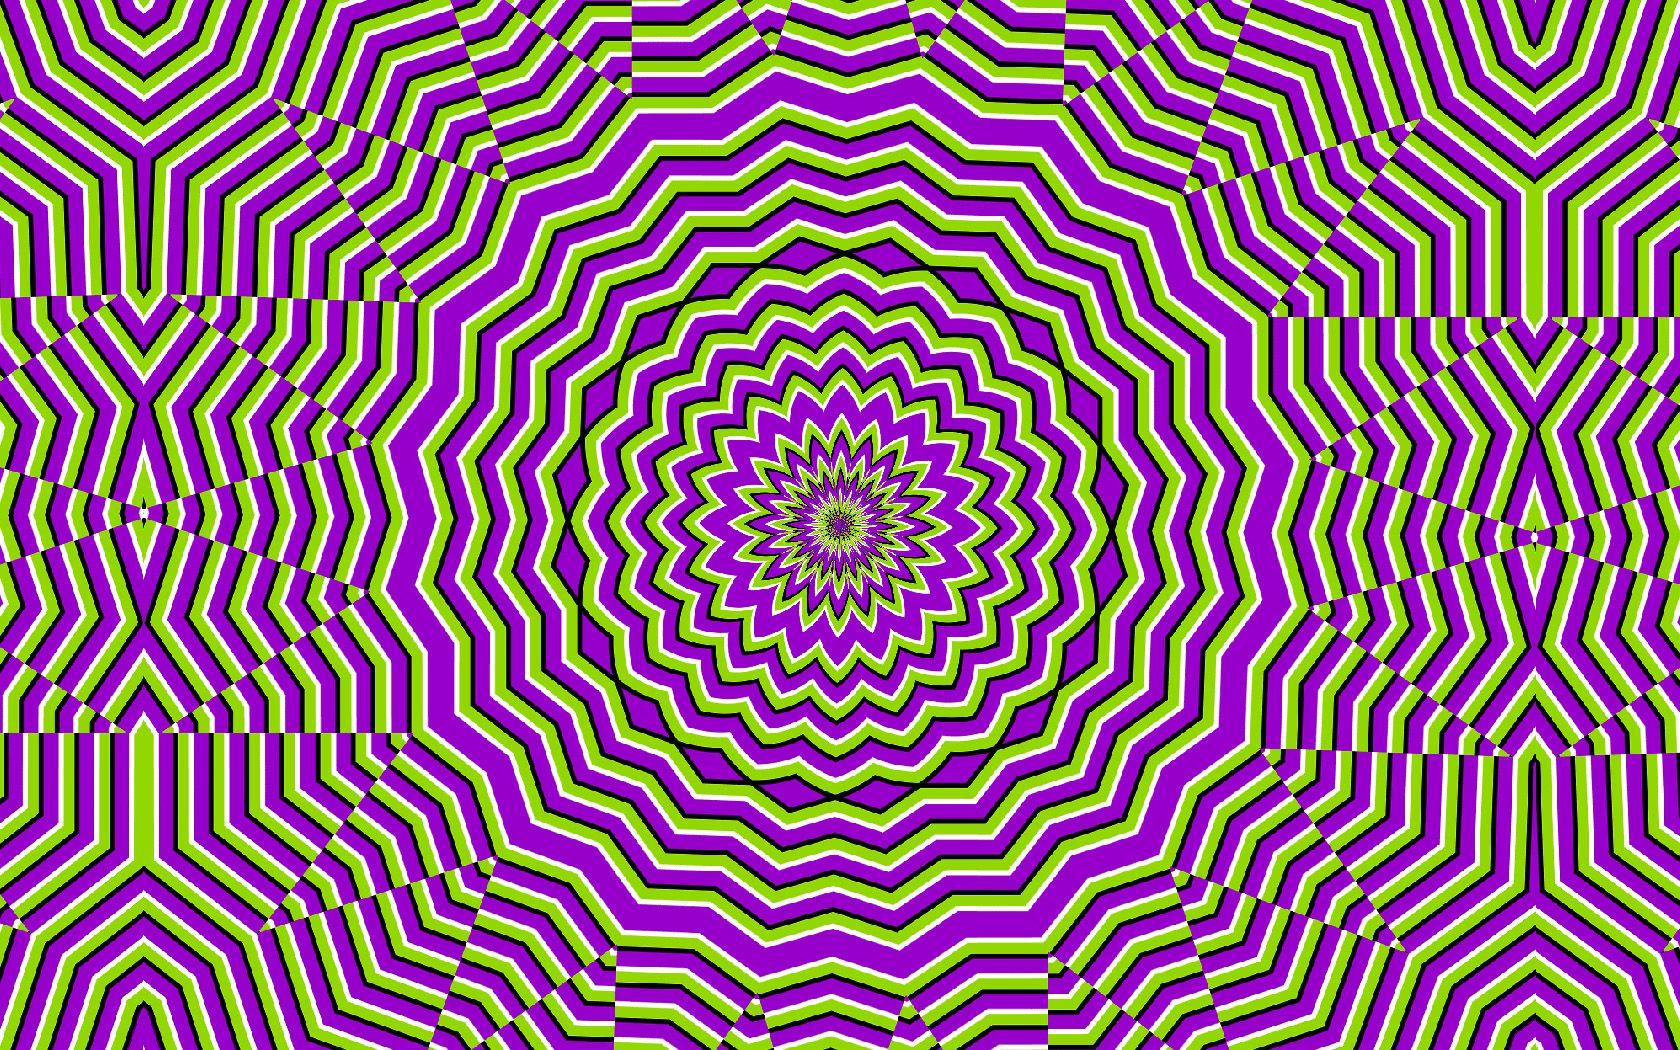 Moving Optical Illusions Wallpapers ...